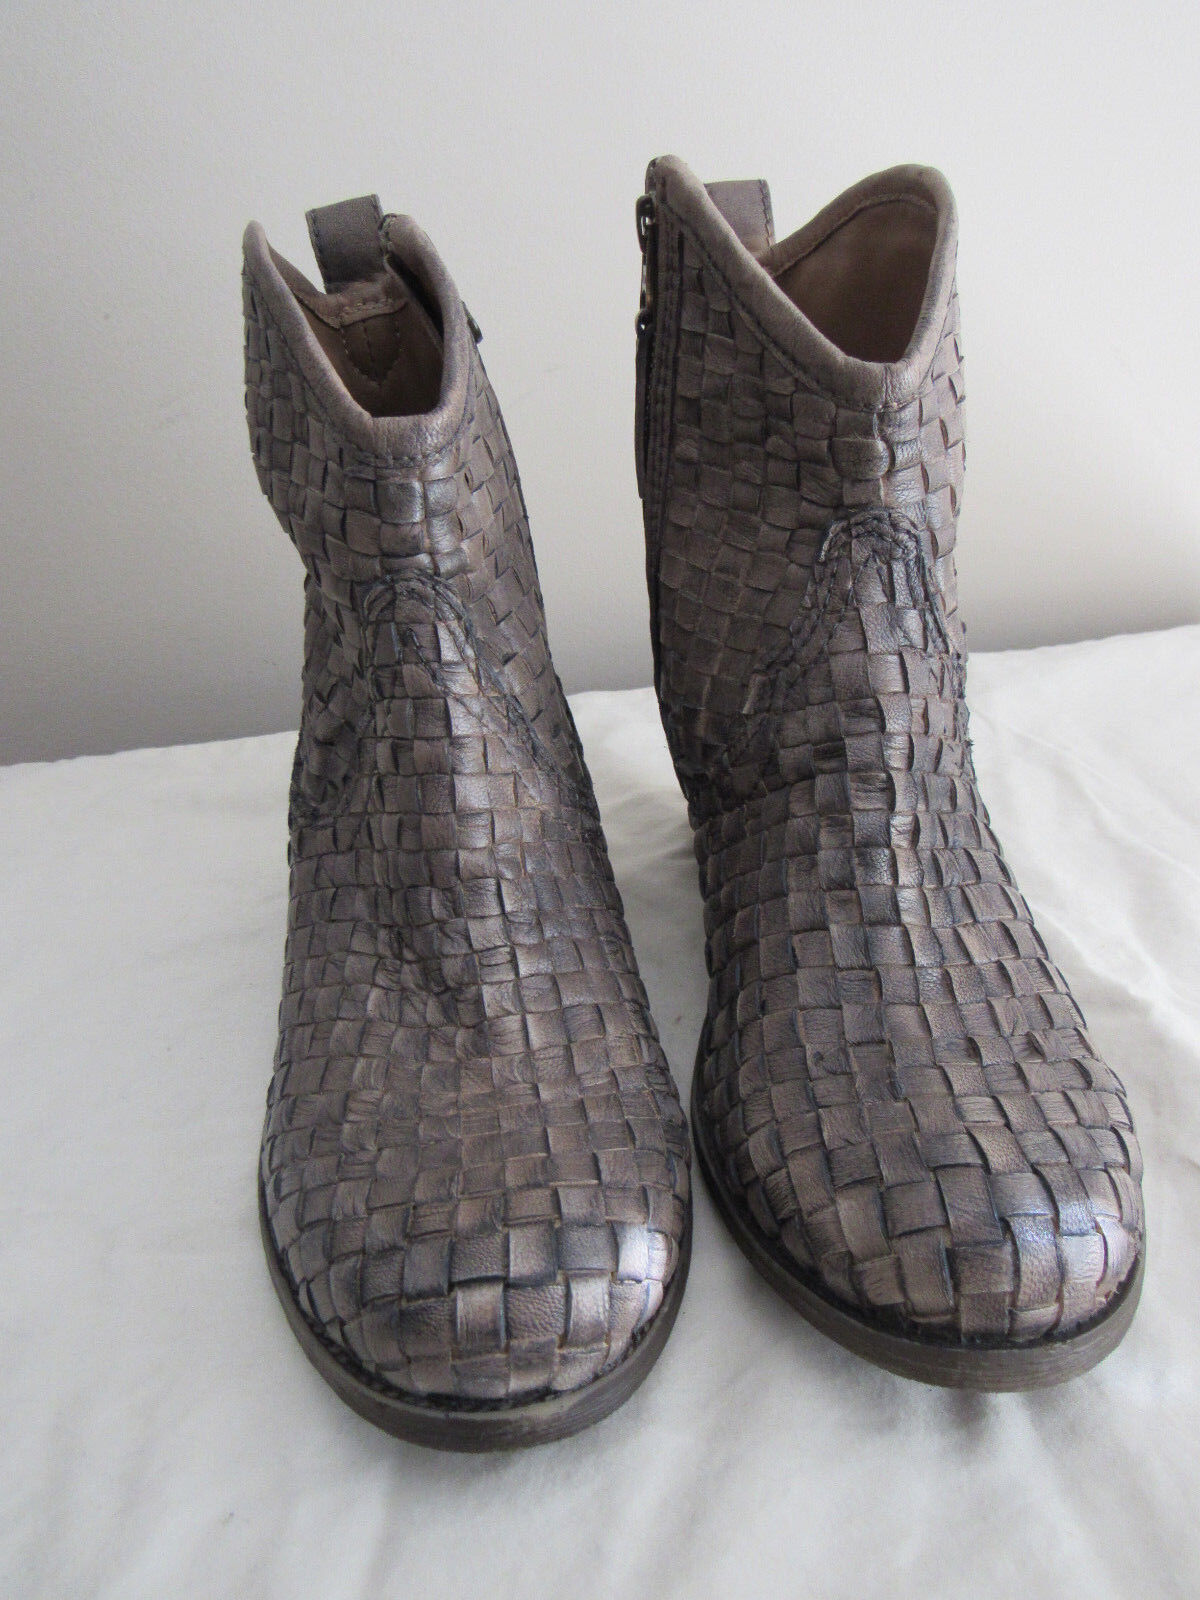 NEW SHERIDAN MIA WOVEN LEATHER ANKLET  BOOTS SIZE 37